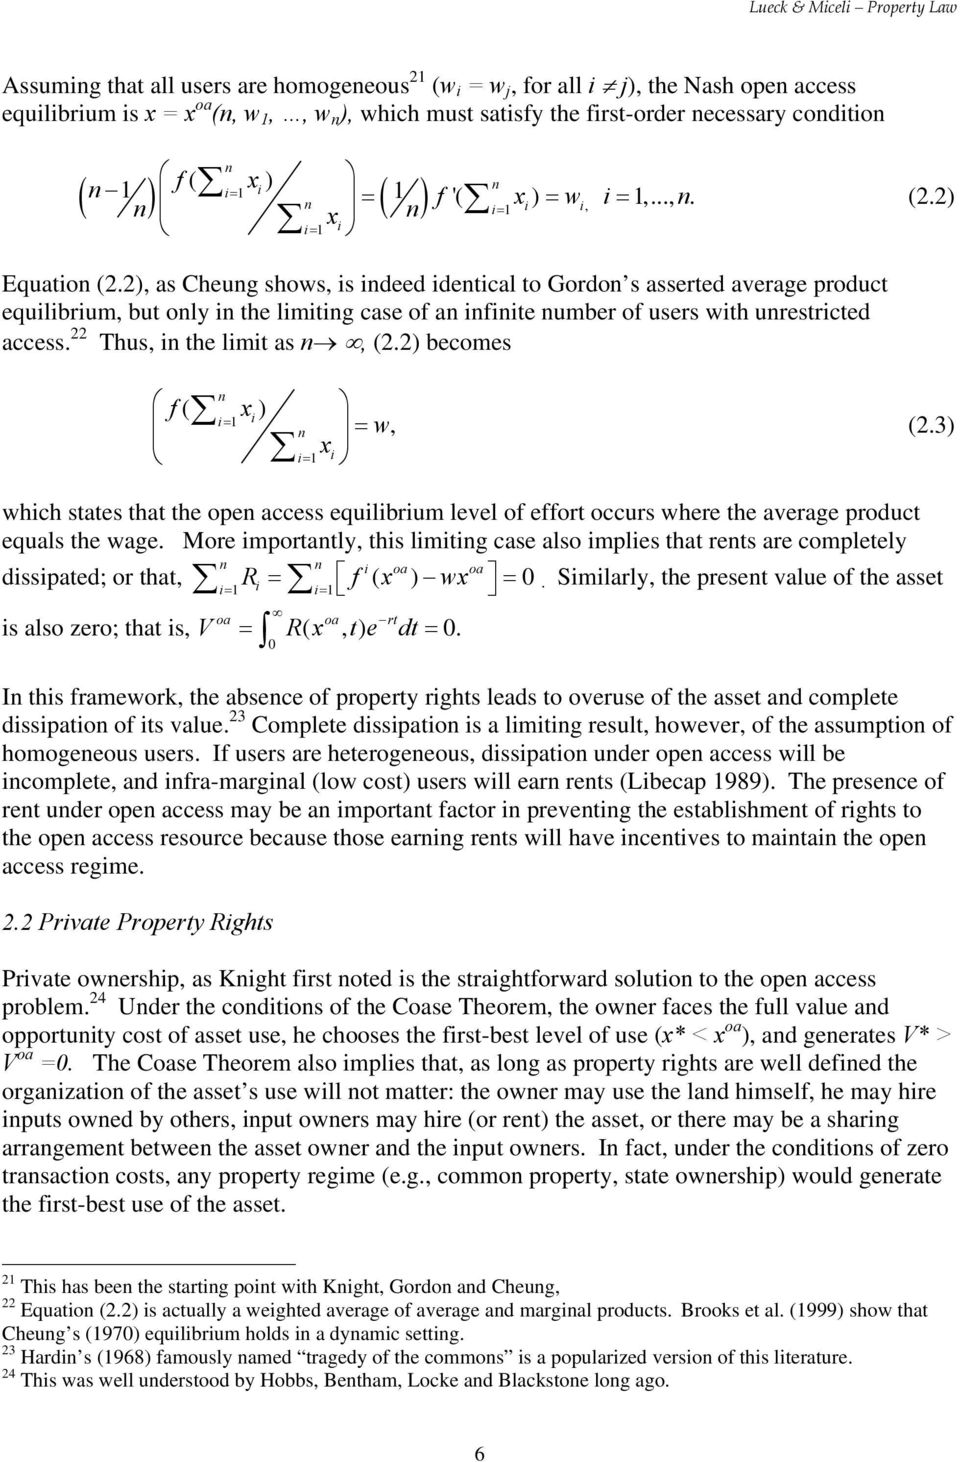 2), as Cheung shows, is indeed identical to Gordon s asserted average product equilibrium, but only in the limiting case of an infinite number of users with unrestricted access.